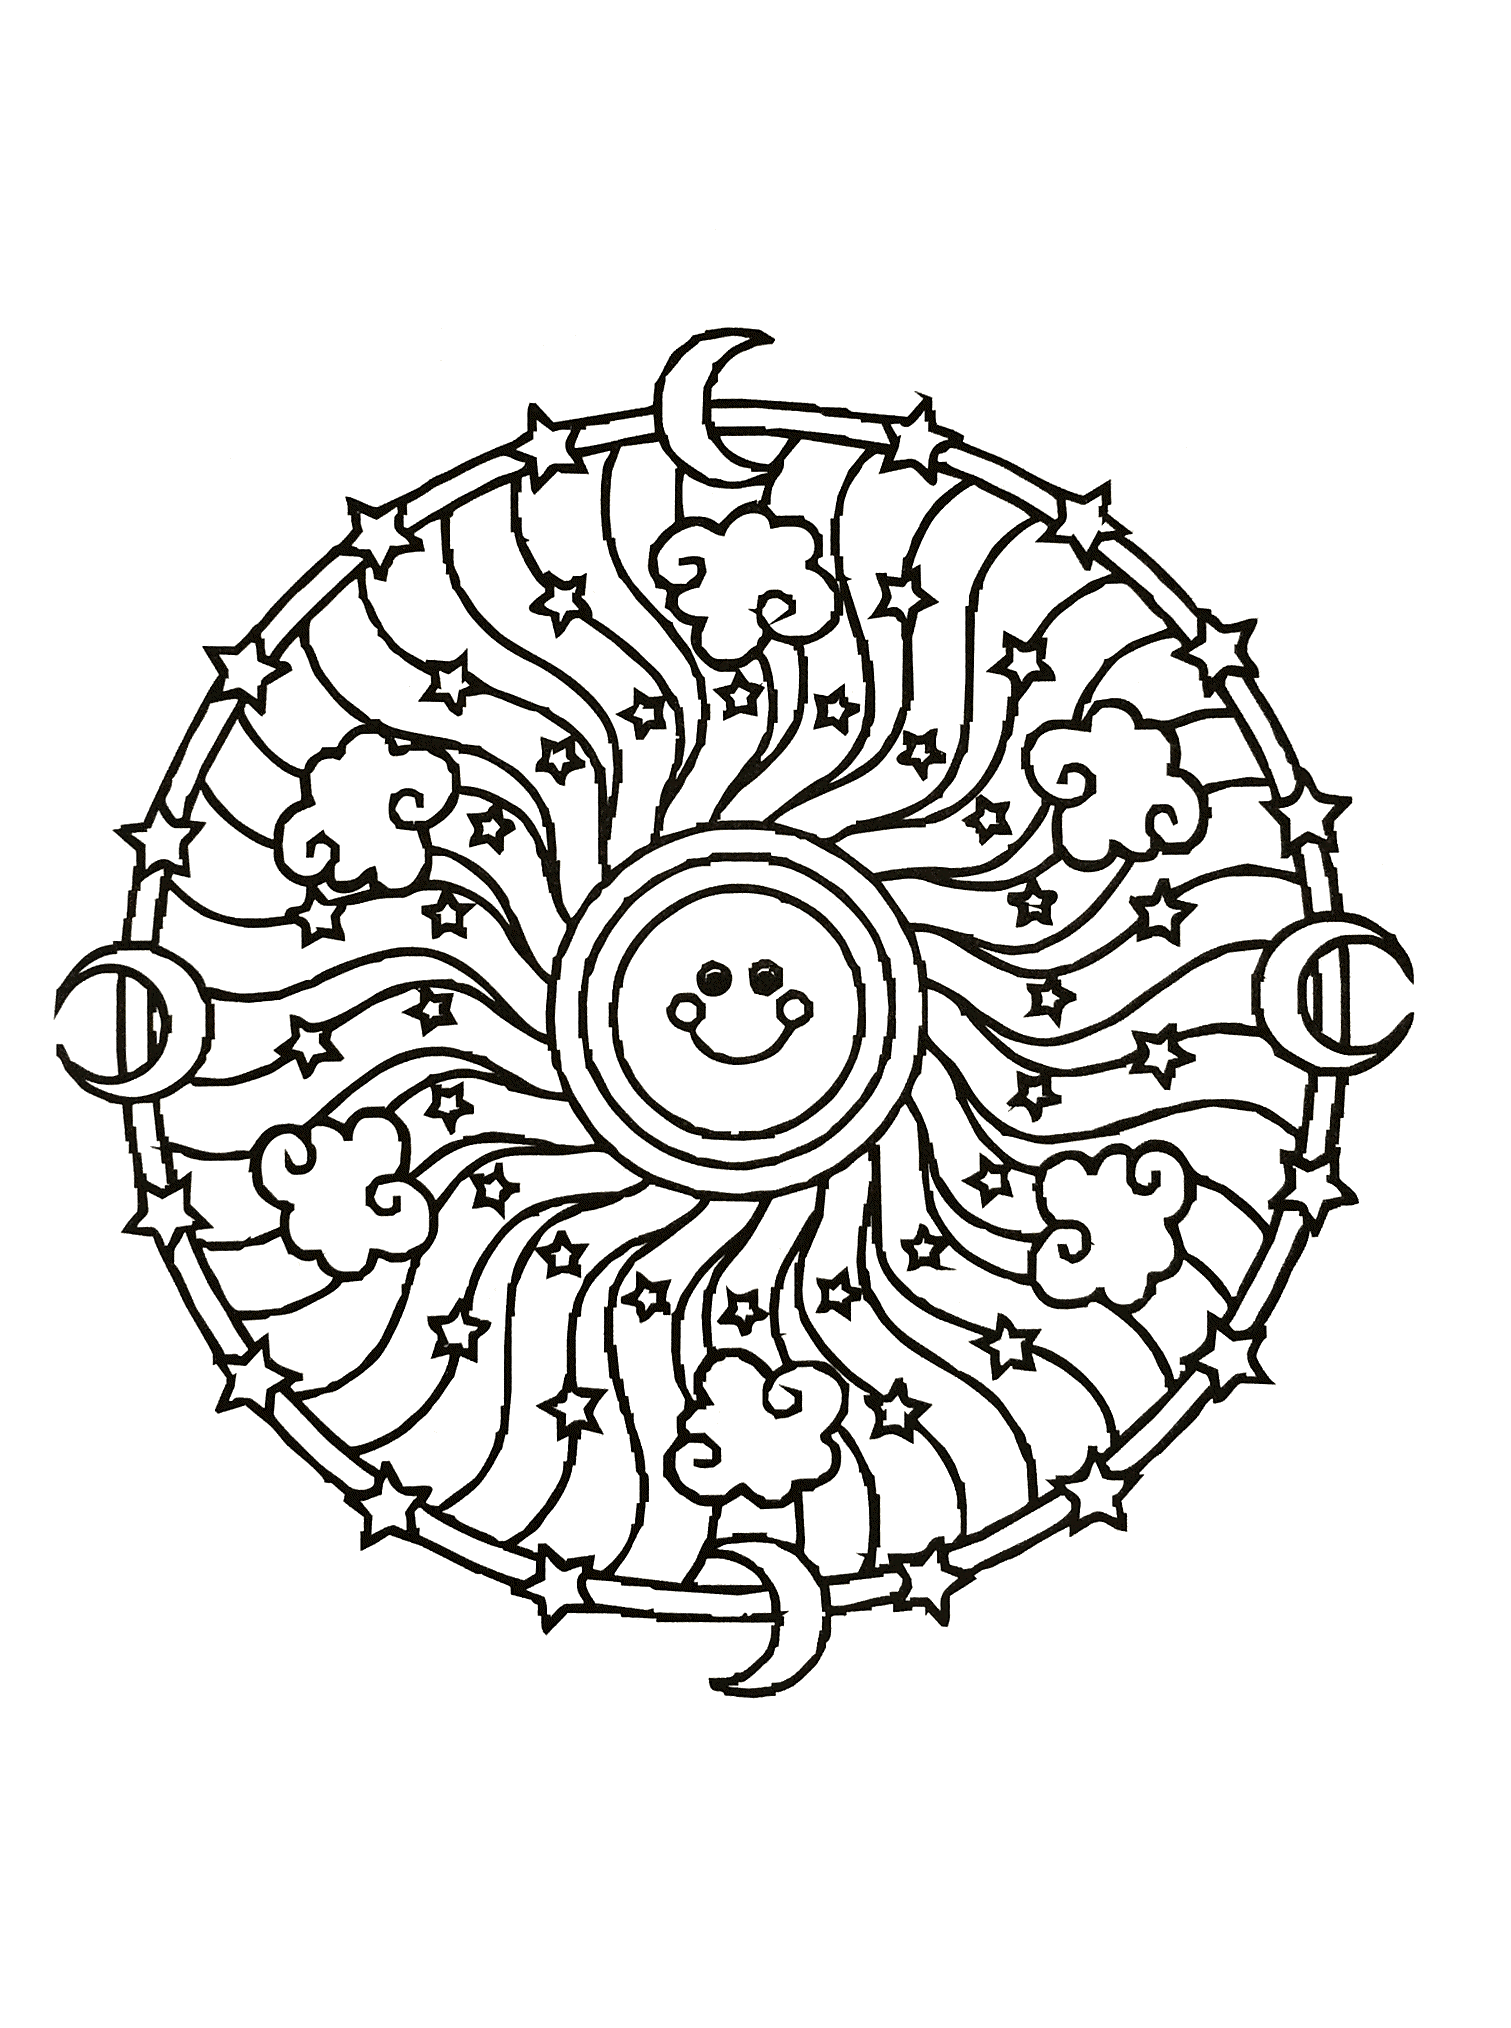 Simple Mandala 54 Mandalas Coloring Pages For Kids To